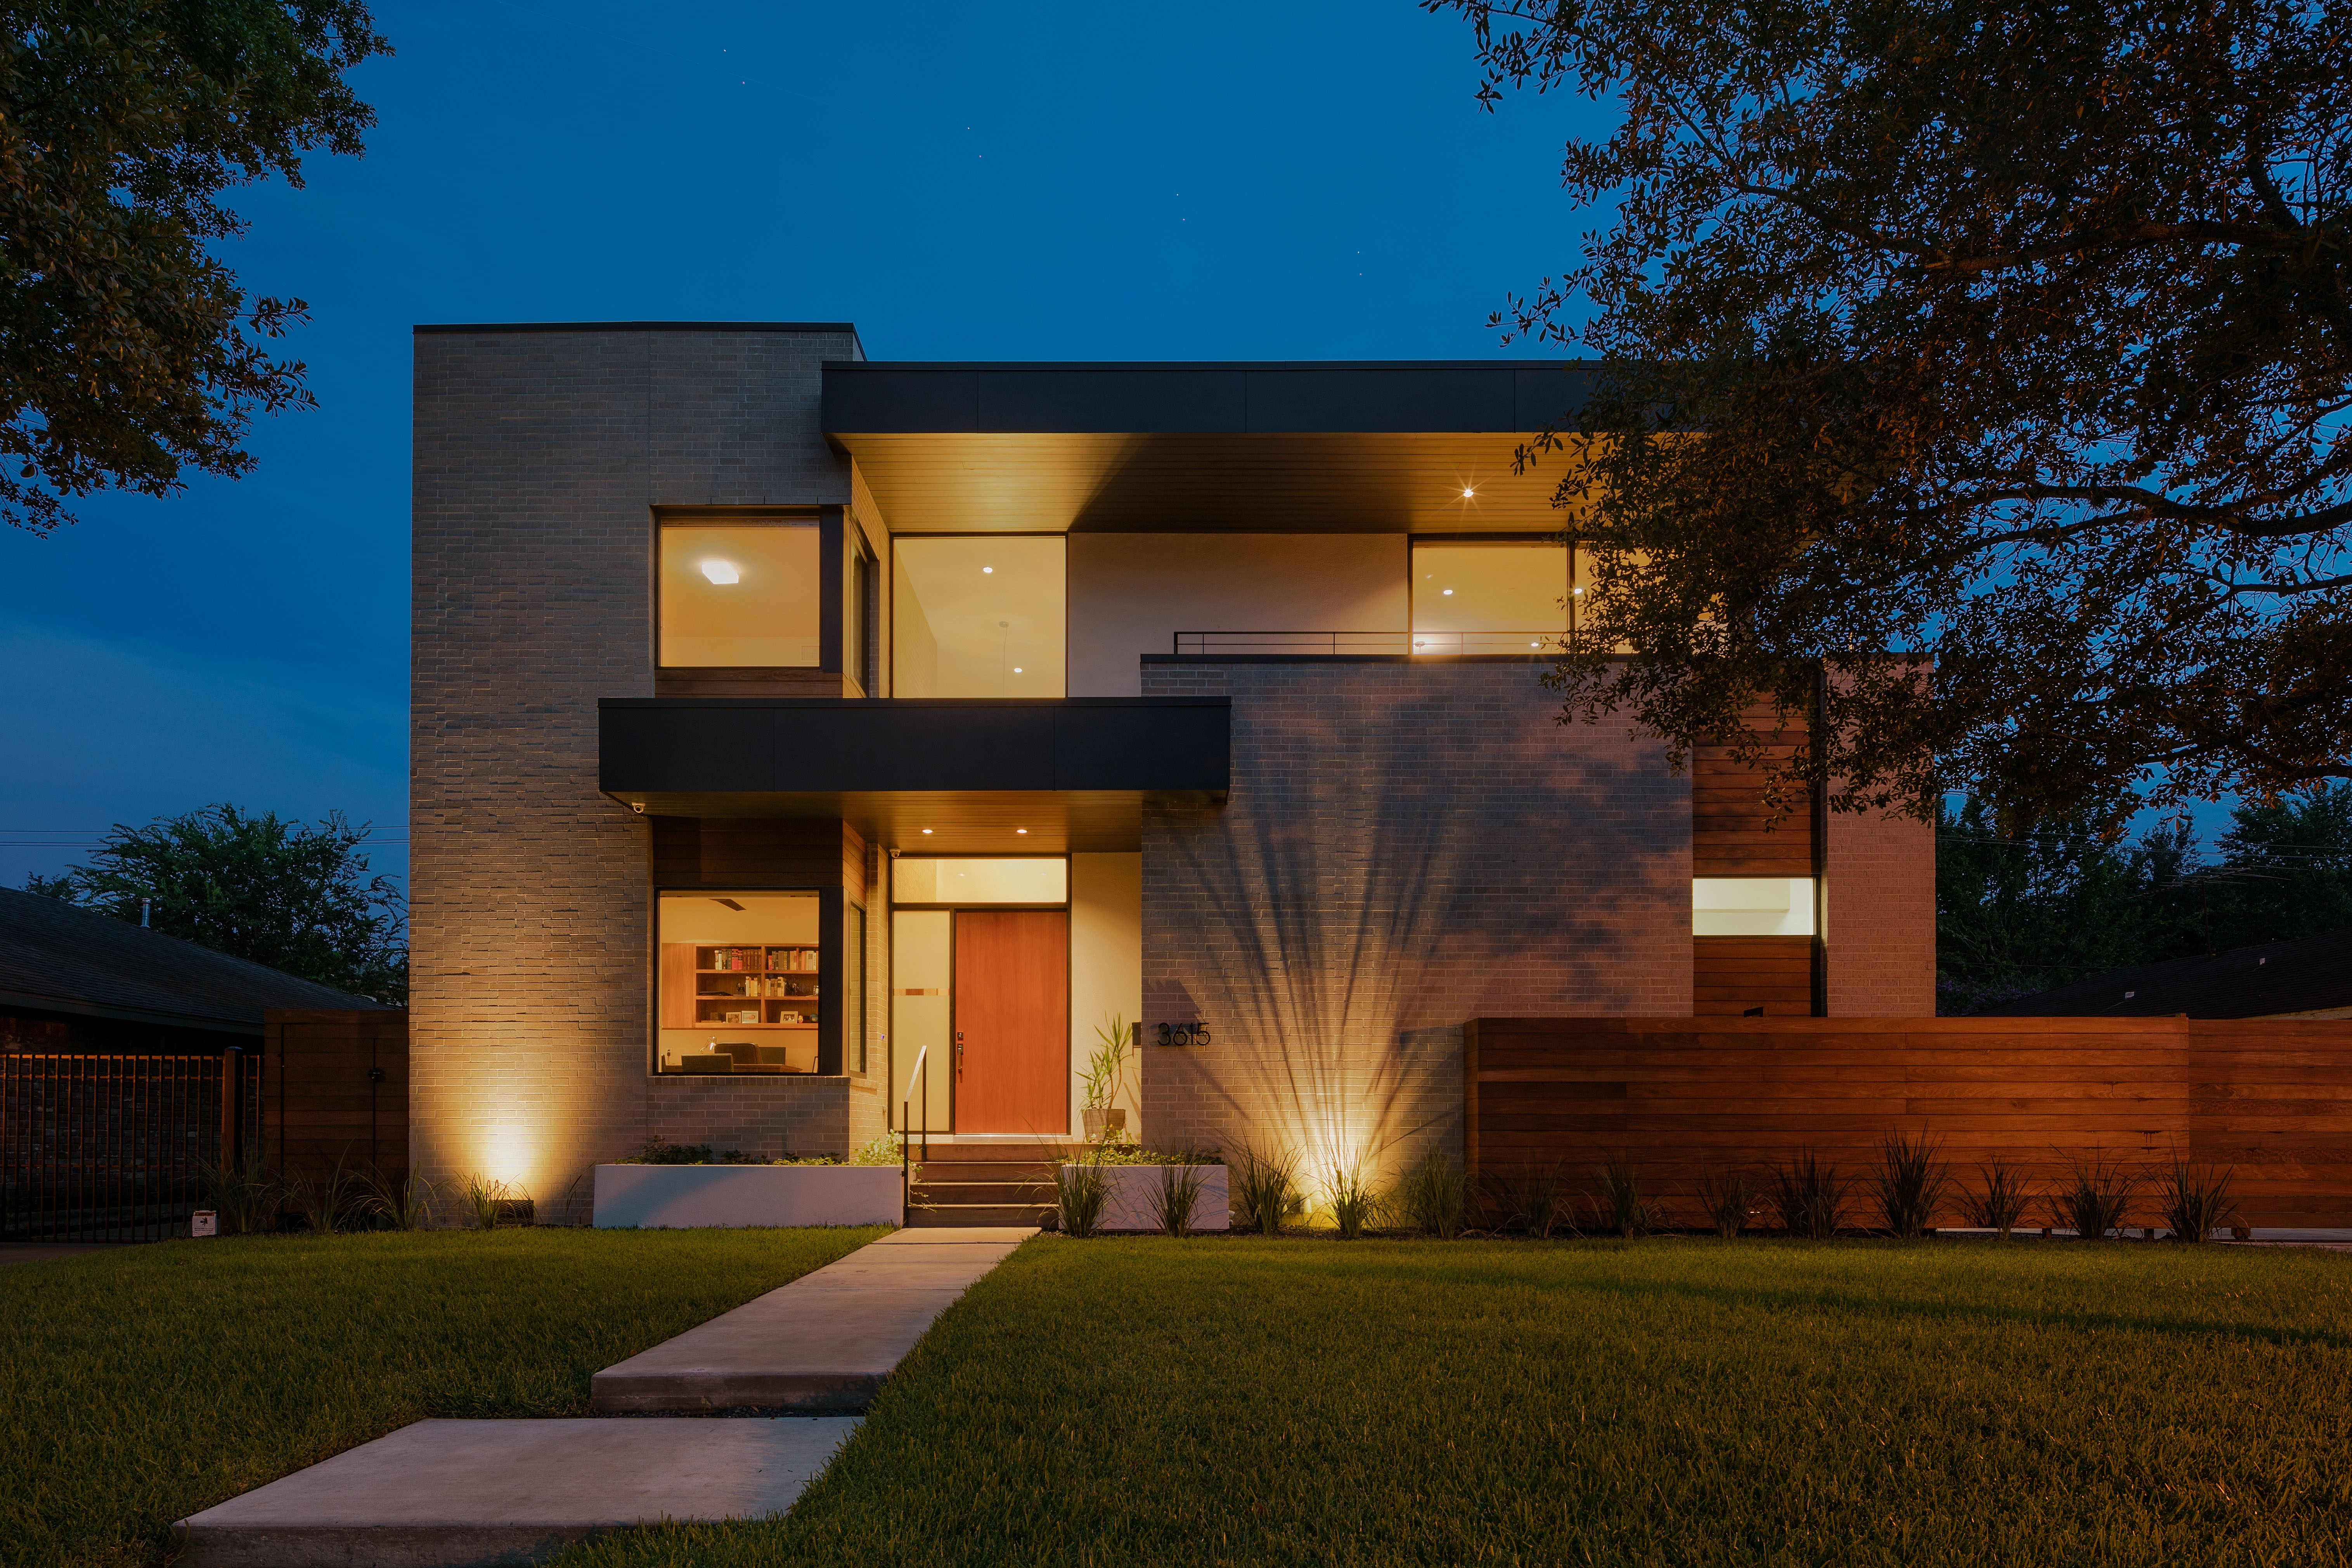 3615 Merrick, Houston, TX 77025 - 4,037 square feet, studioMET